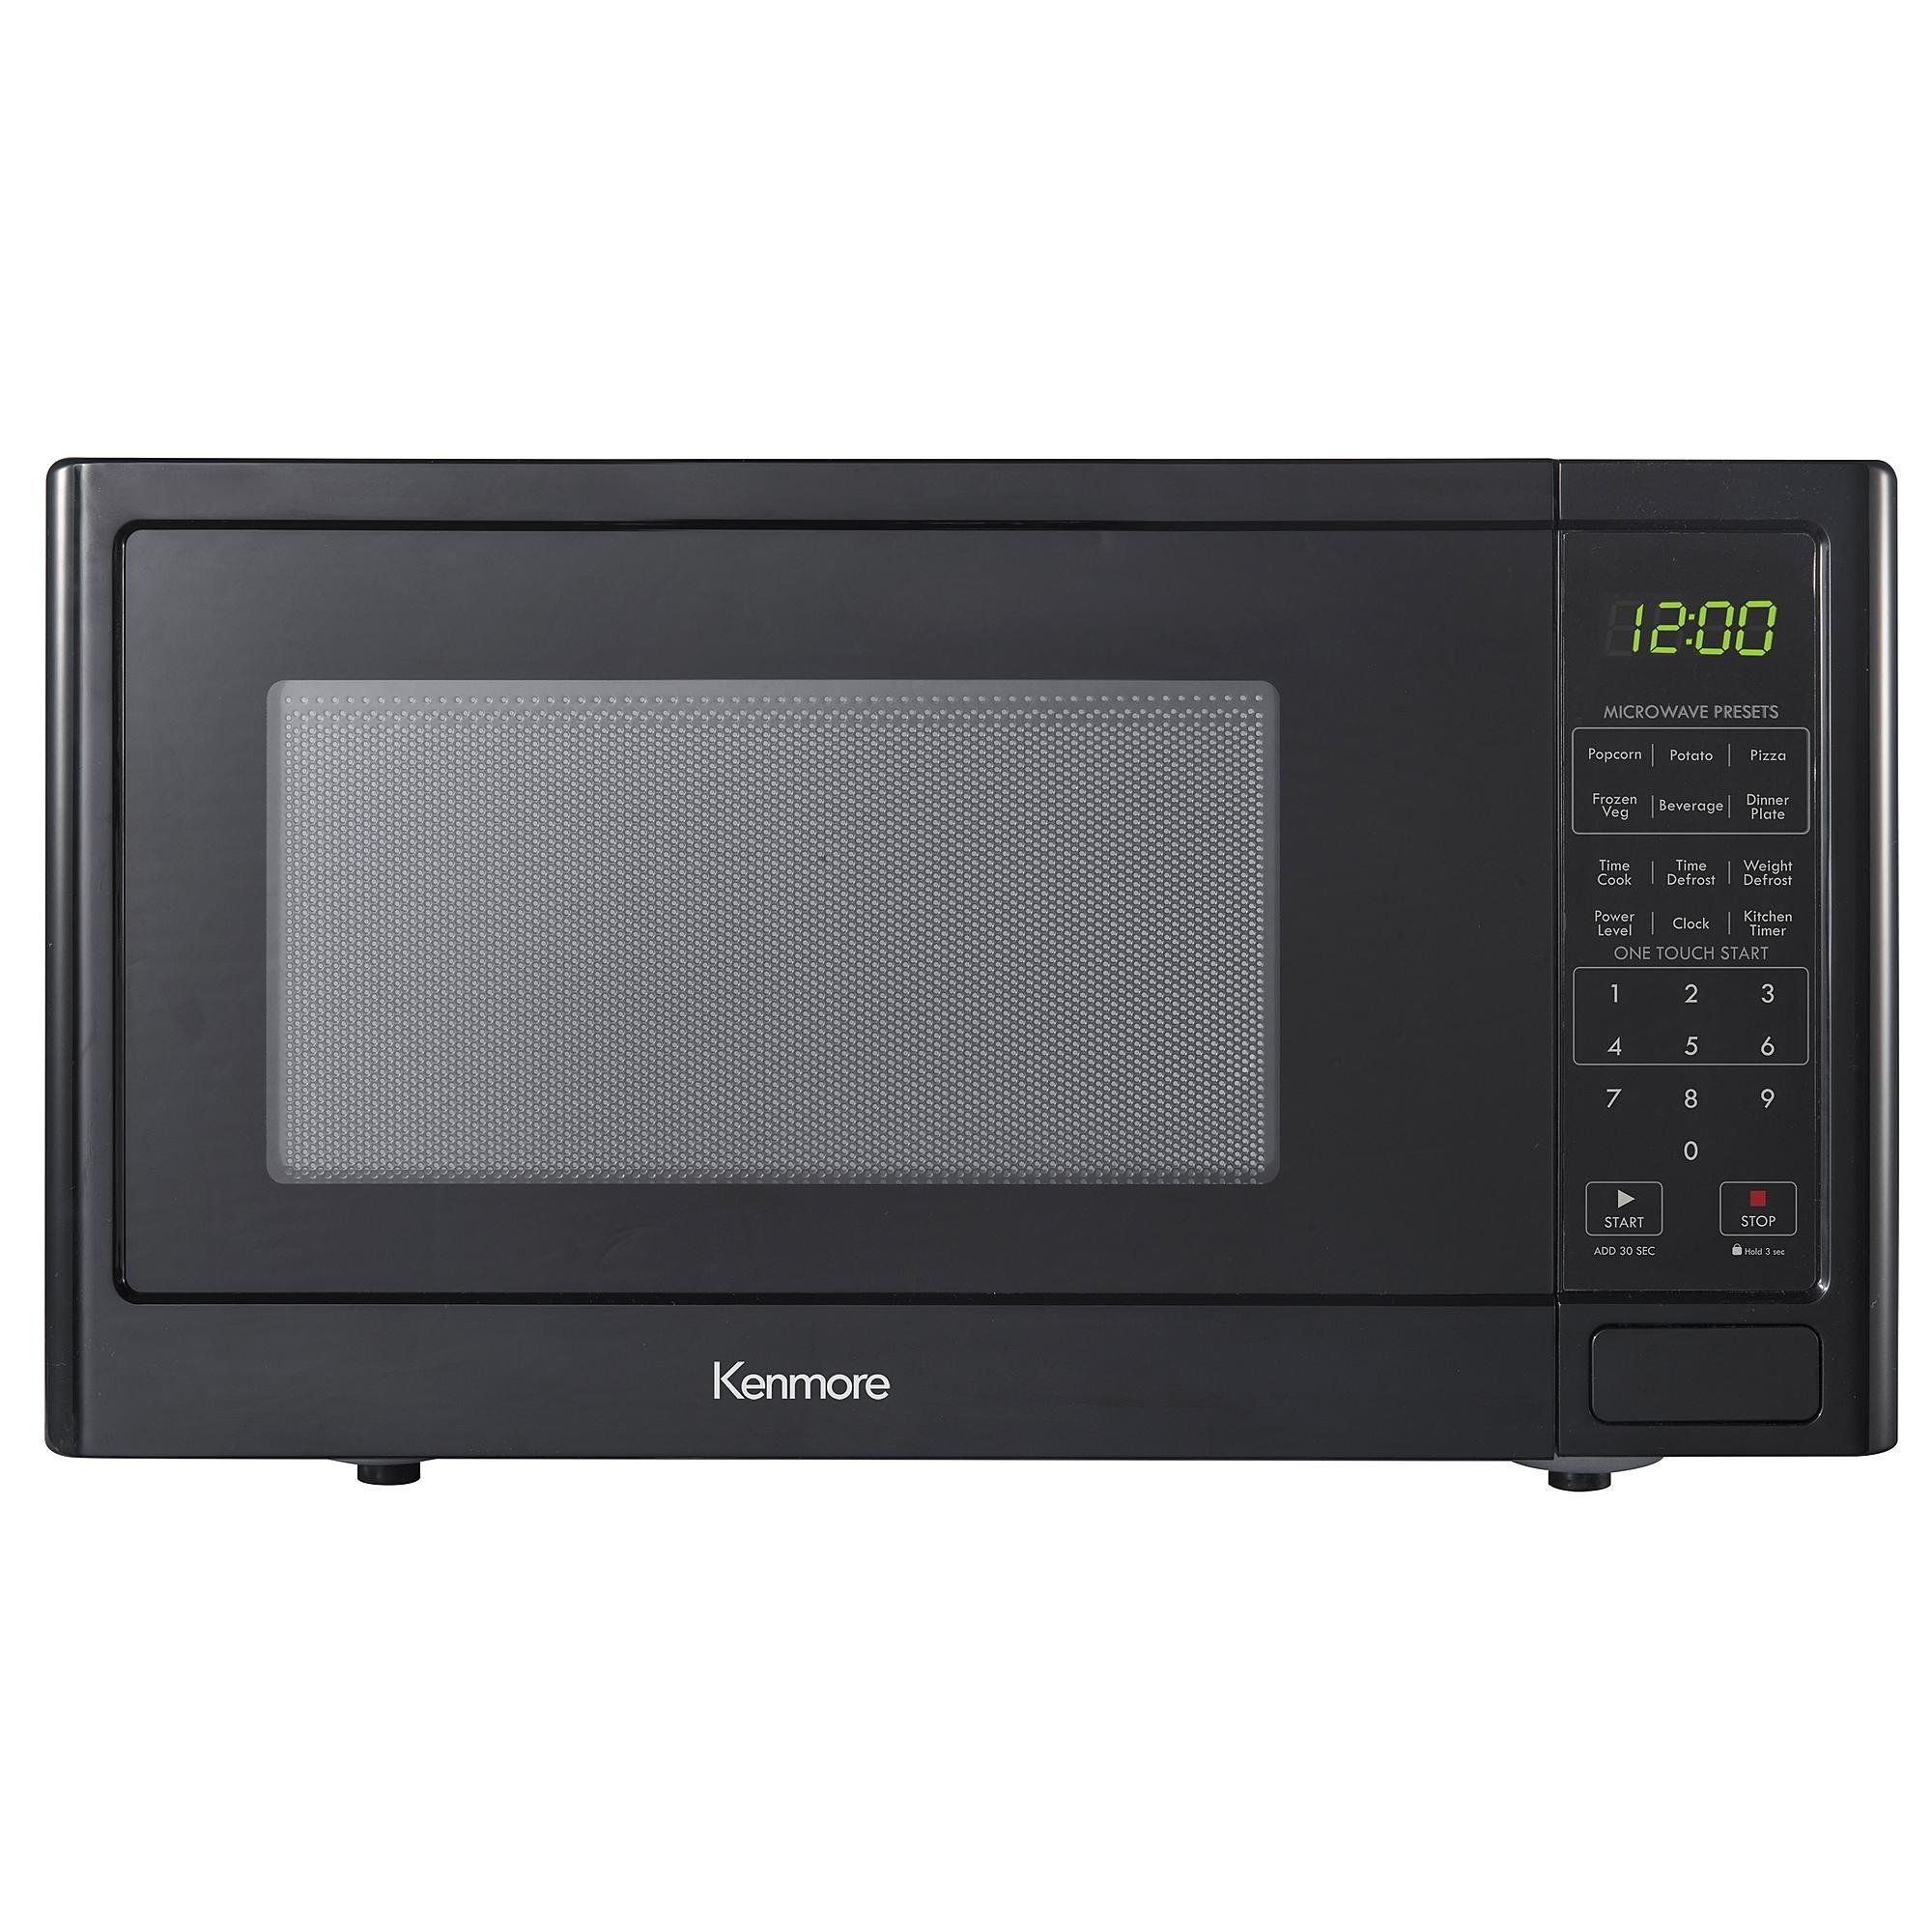 Kenmore 0 9 Cu Ft Countertop Microwave Oven Black Be Sure To Check Out This Awesome Product This Is An Affiliate Link Mic Microwave Ovens In 2019